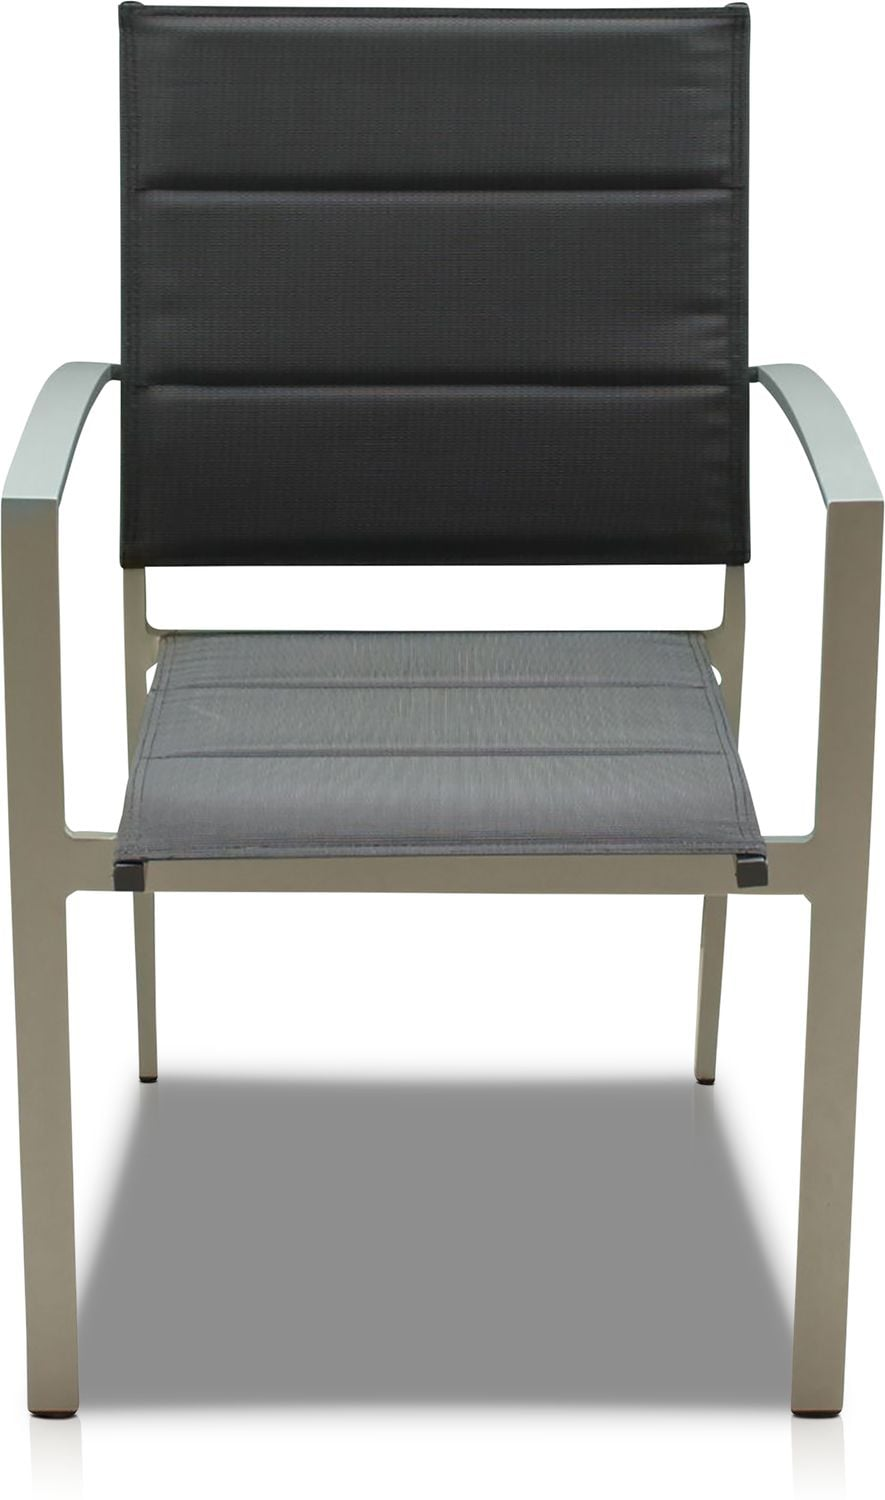 Outdoor Furniture - Edgewater Set of 6 Outdoor Chairs